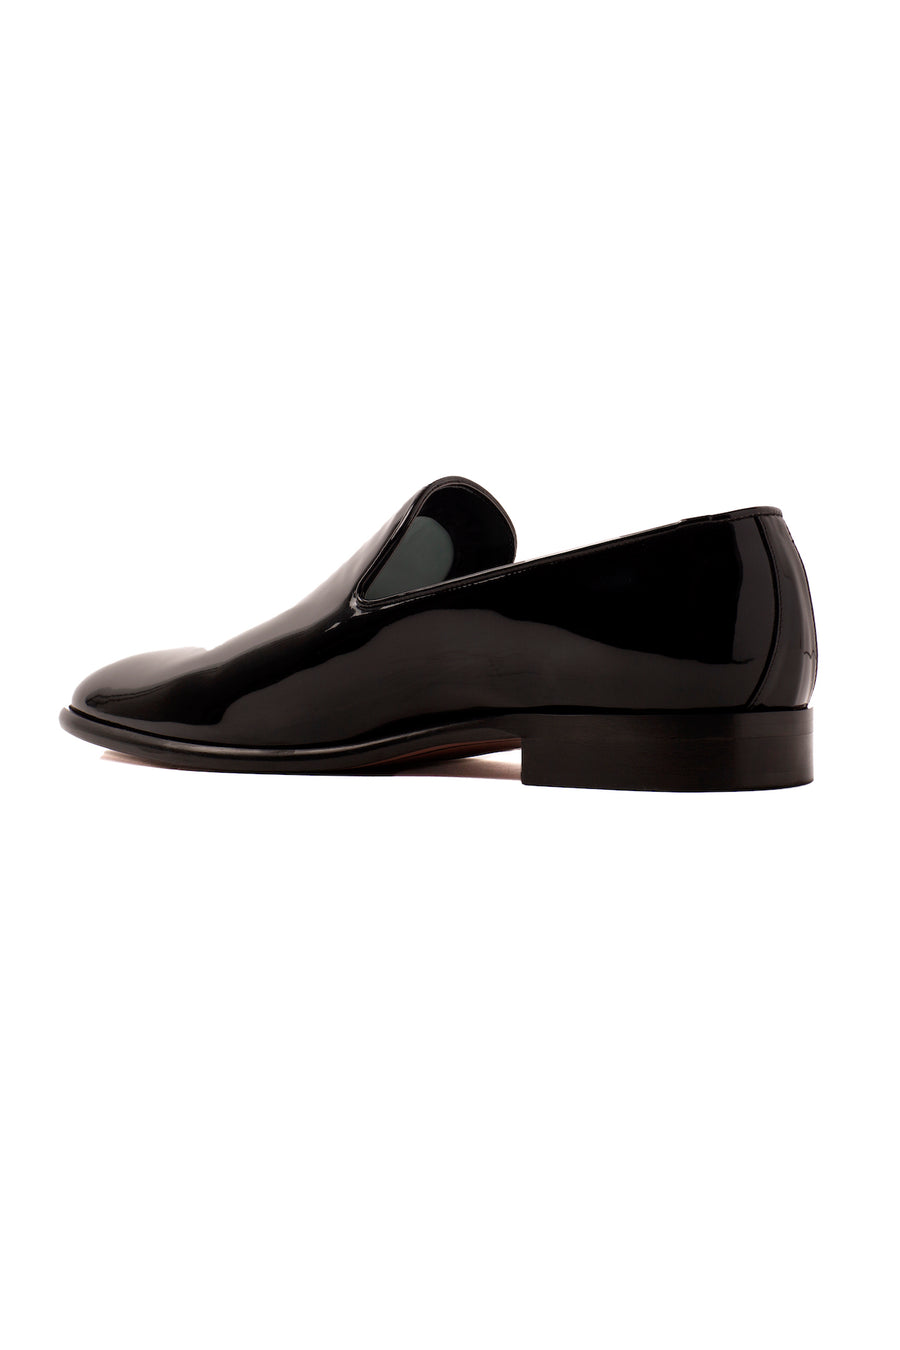 Dylan Black Patent-Effect Vegan Loafer